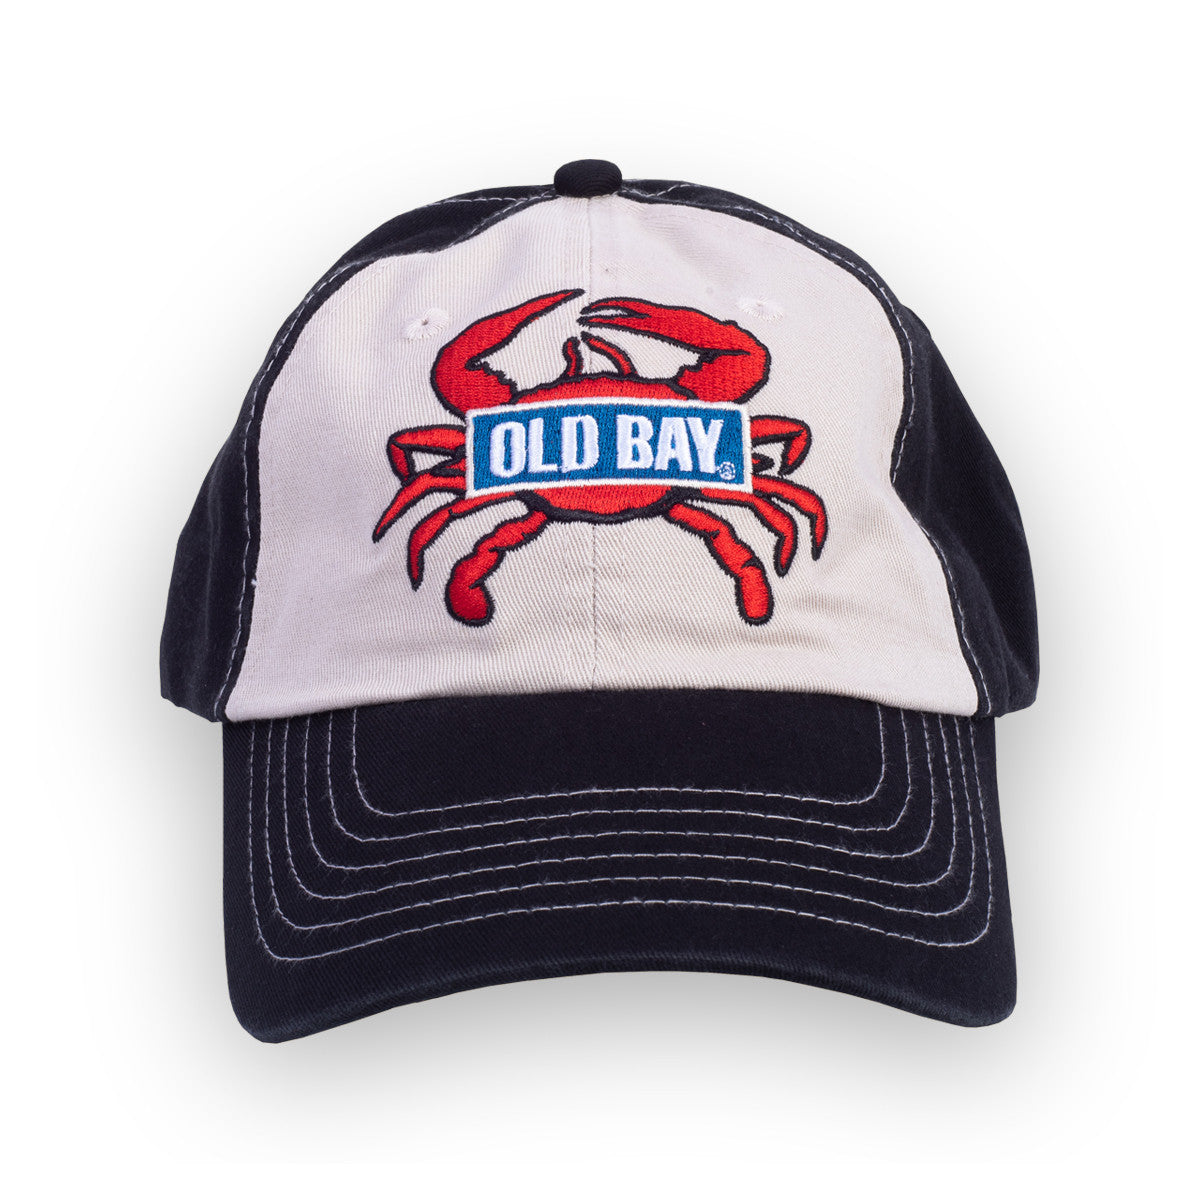 e60650c08be ... australia old bay crab hat front maryland o mine 0f35c 1a533